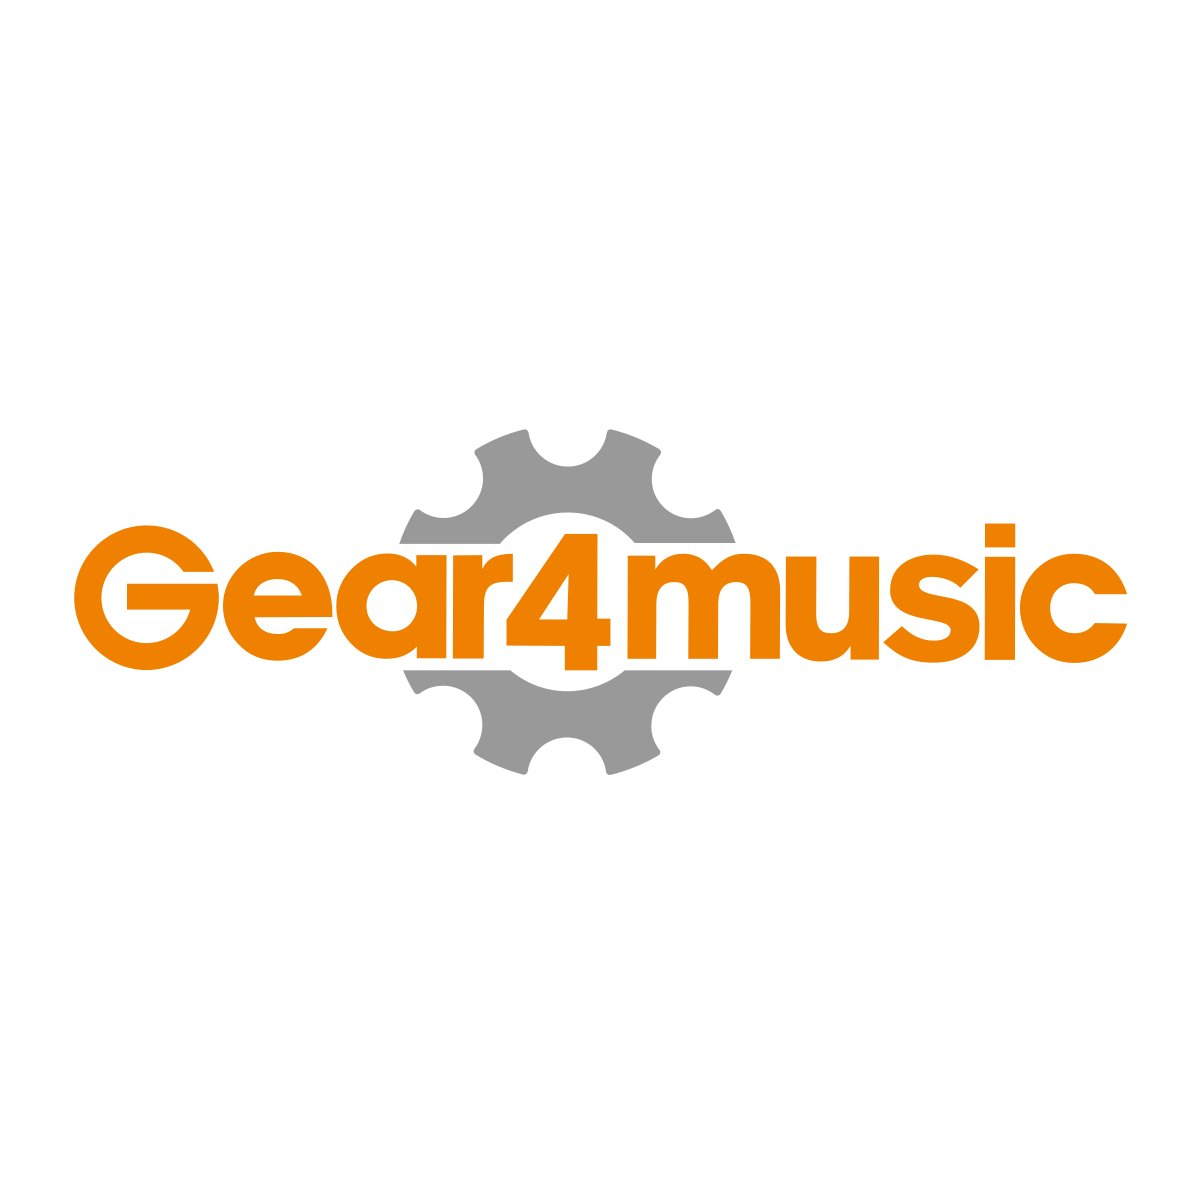 Student Single French Horn by Gear4music